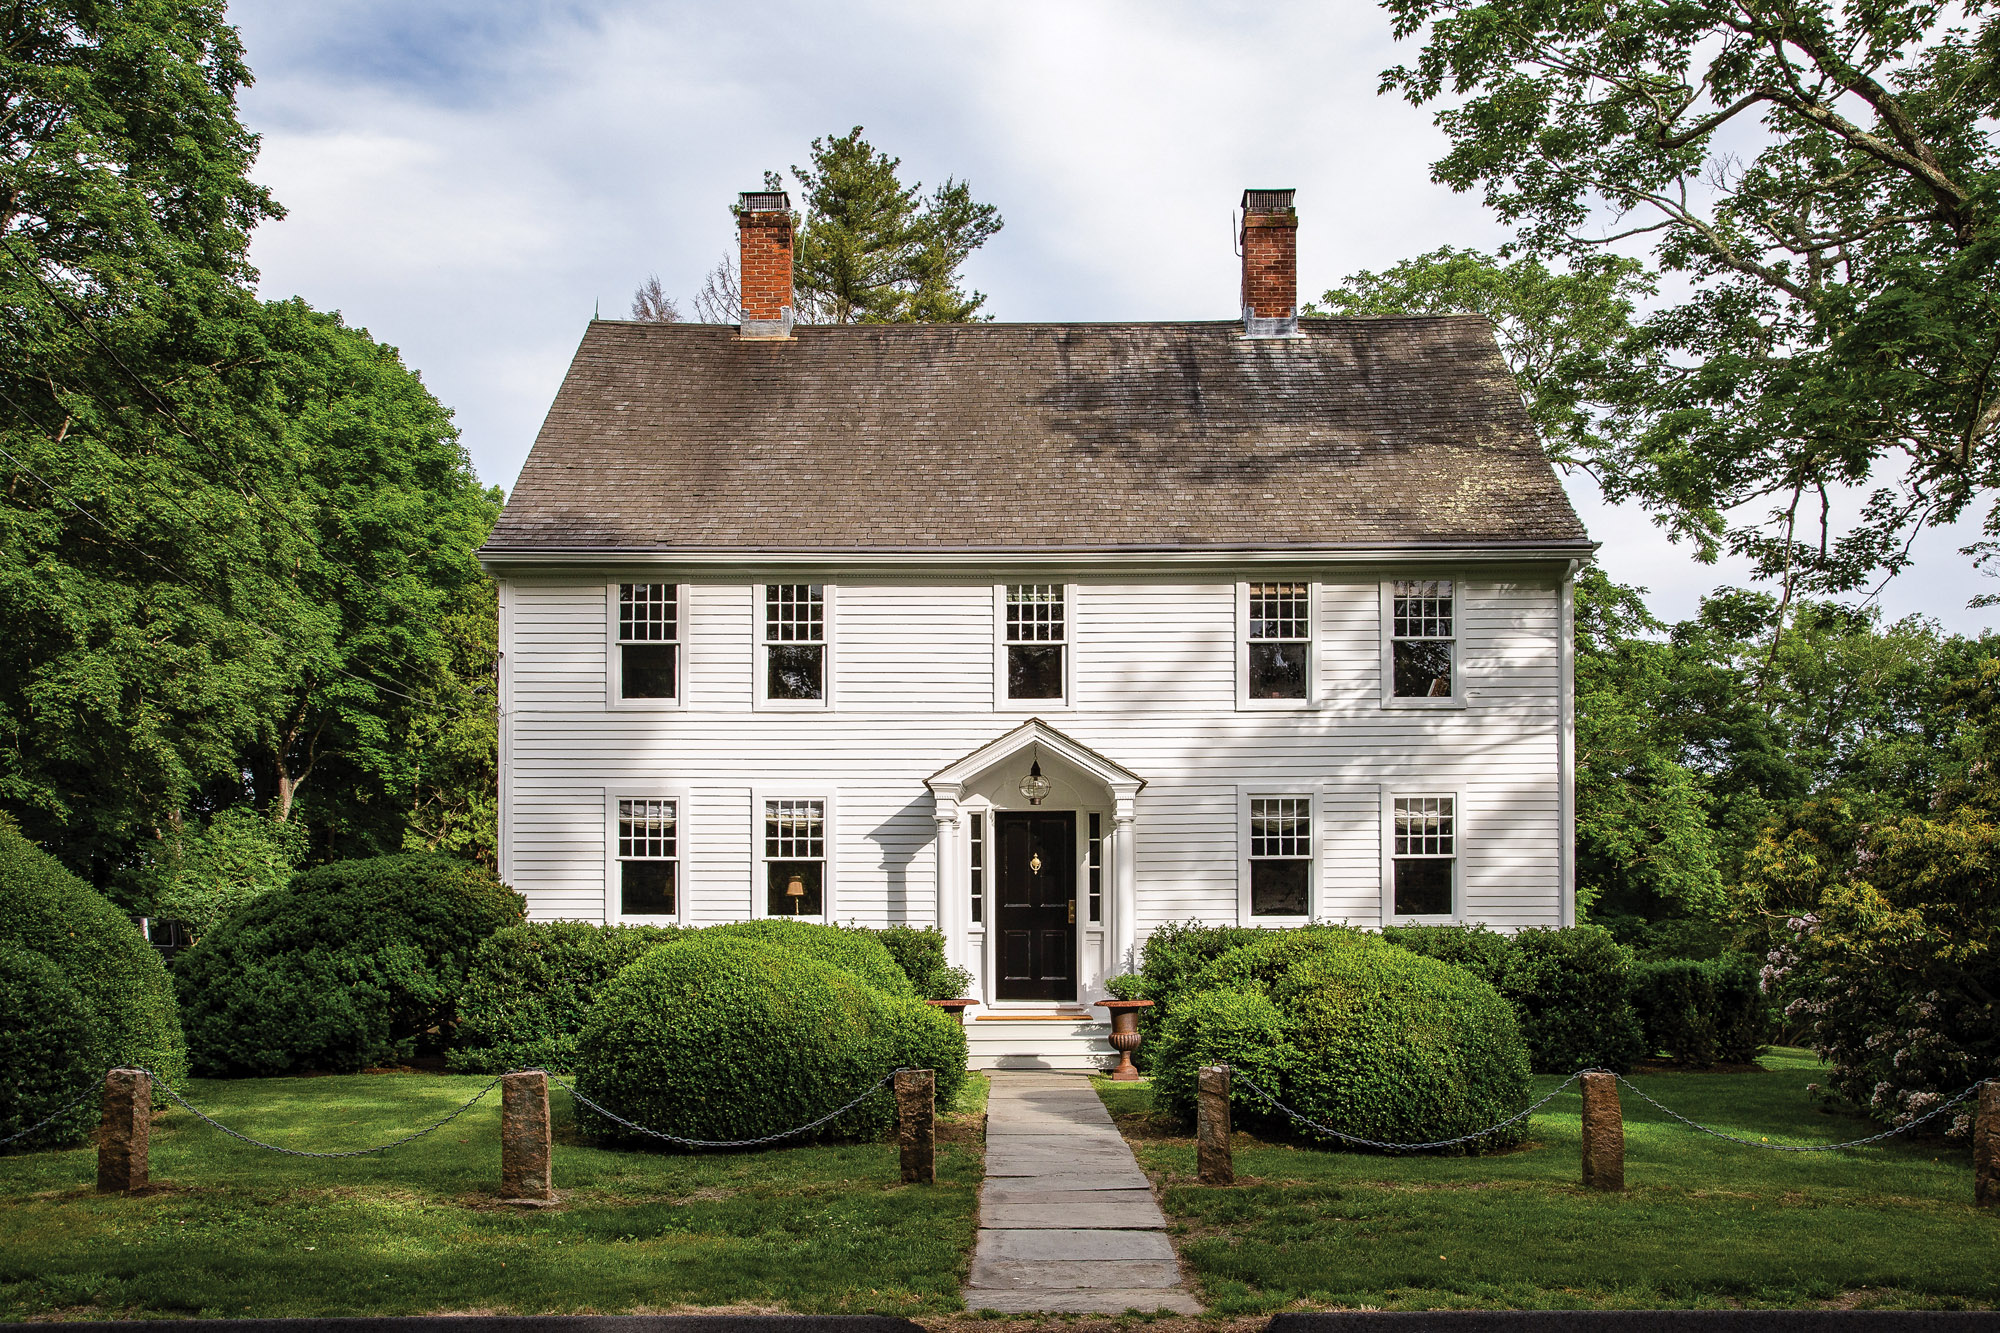 The Colonial-era house is remarkably well preserved.